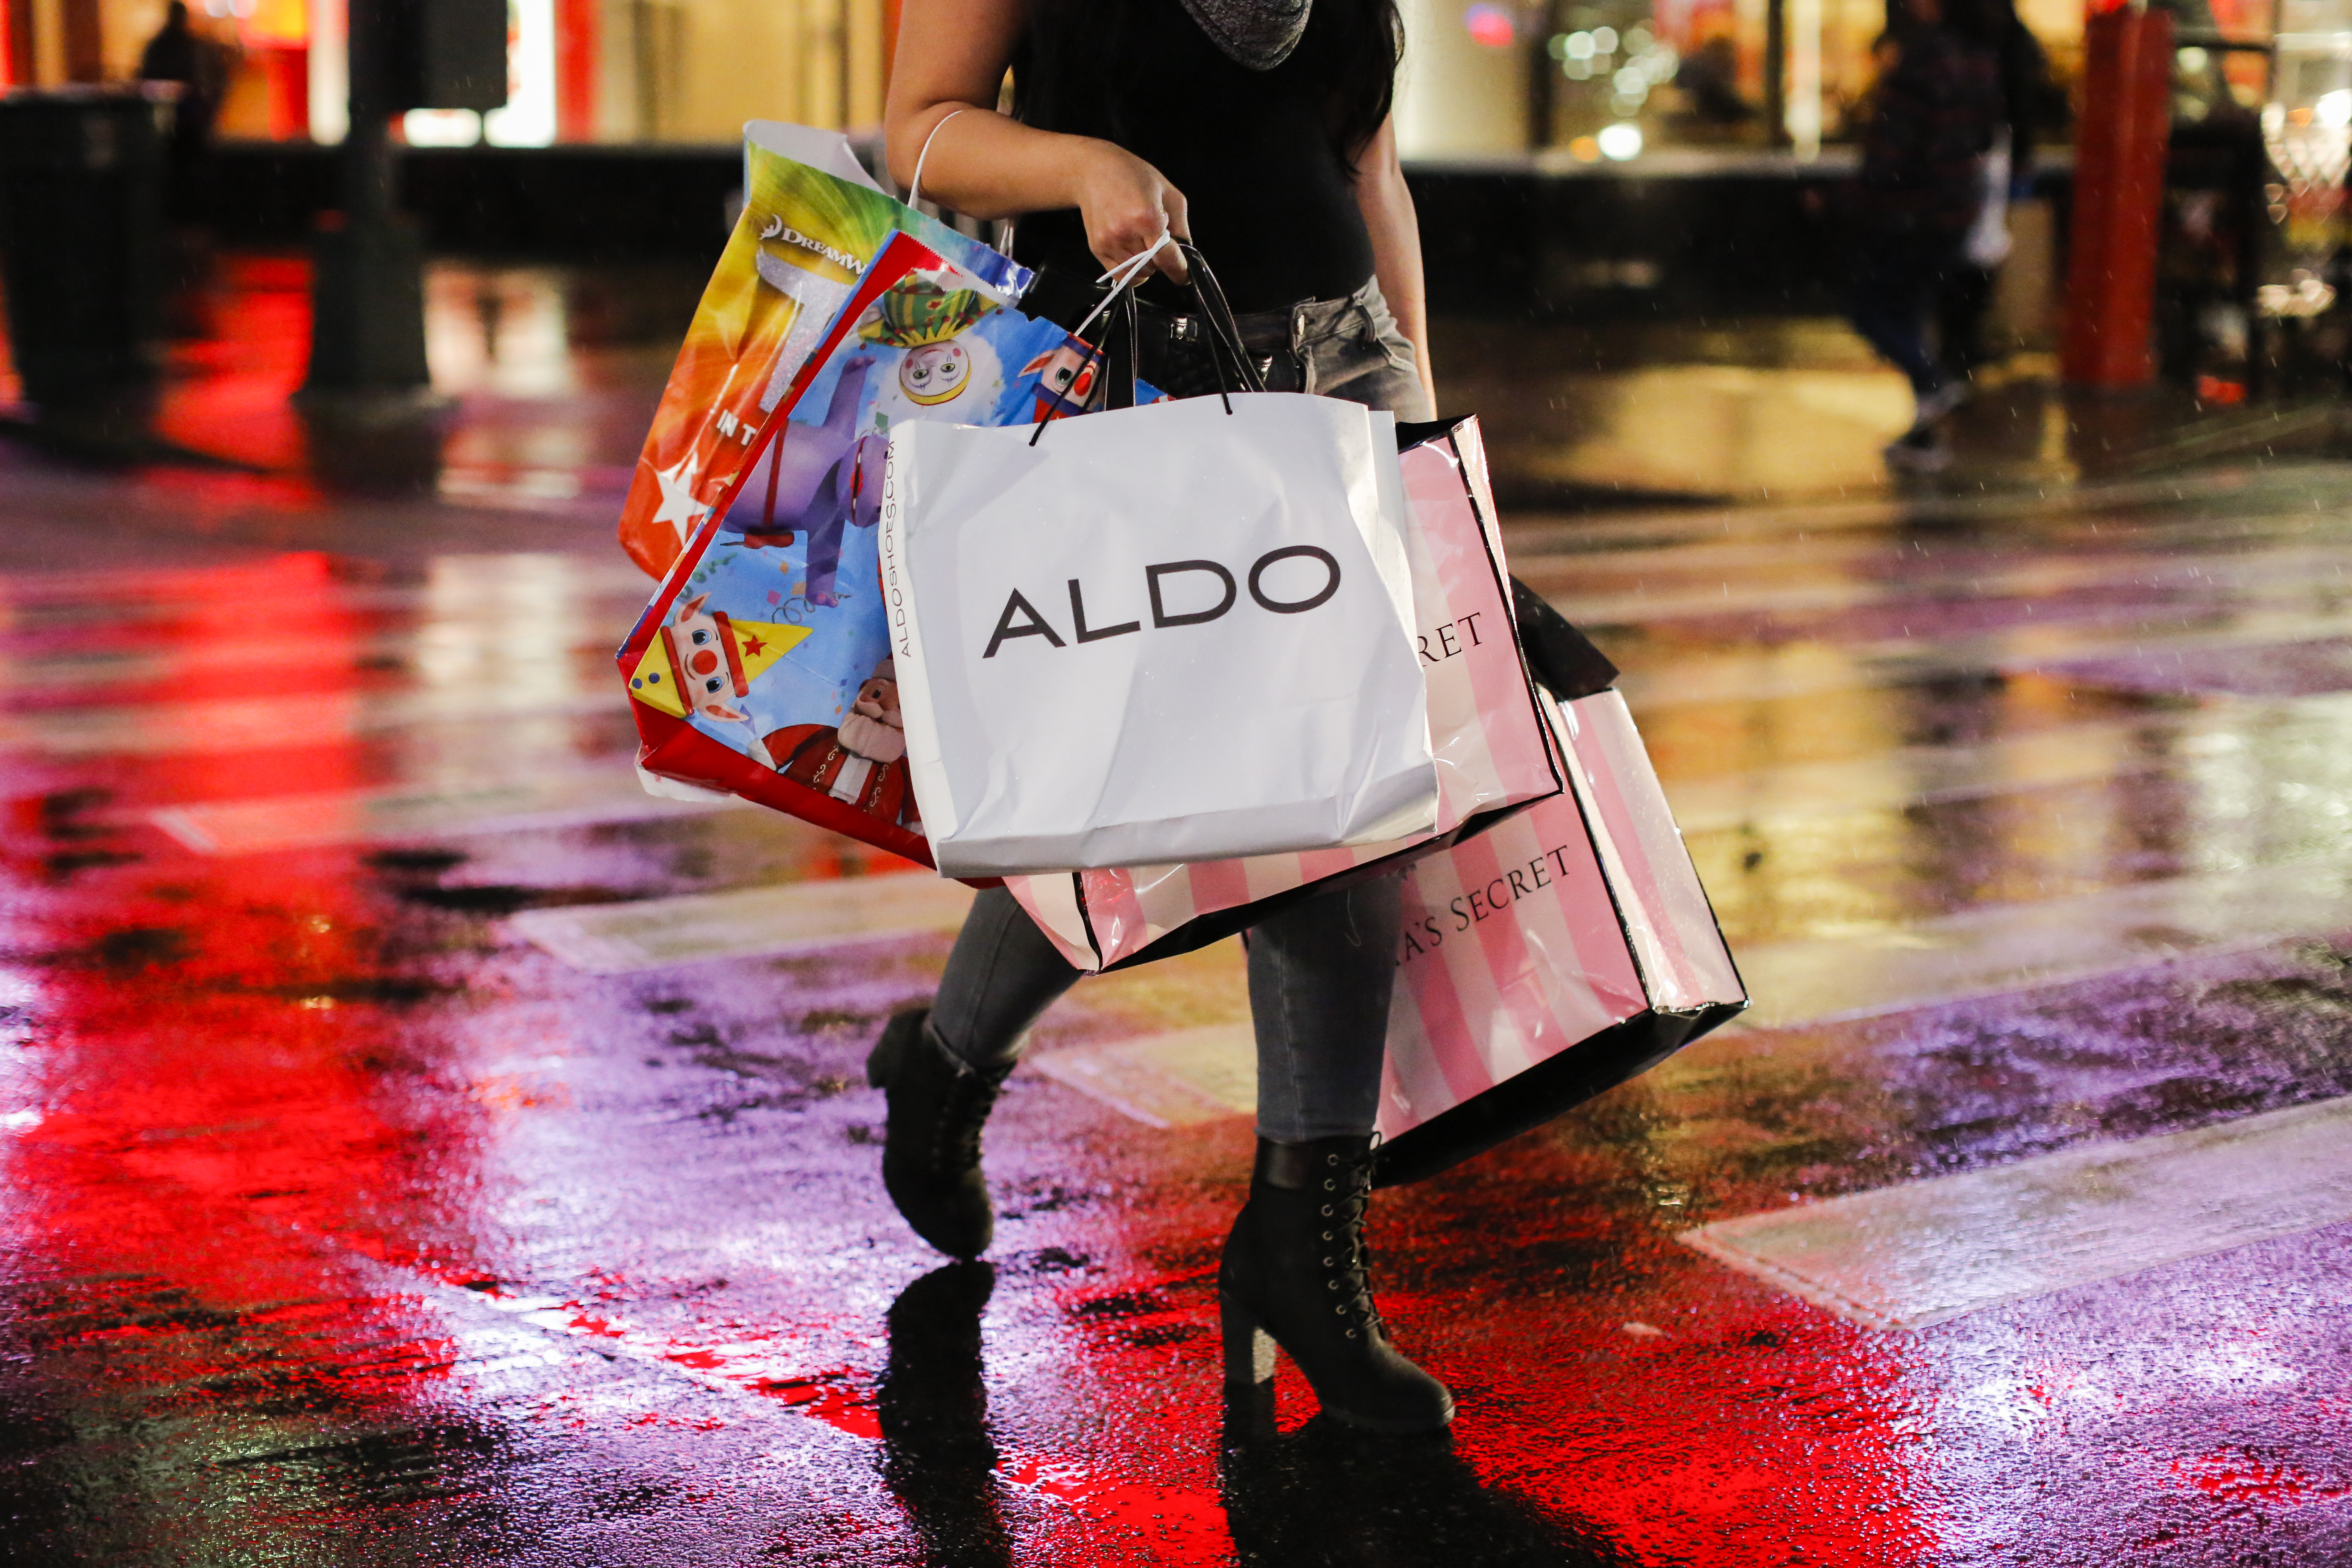 A woman crosses the street toting five shopping bags.